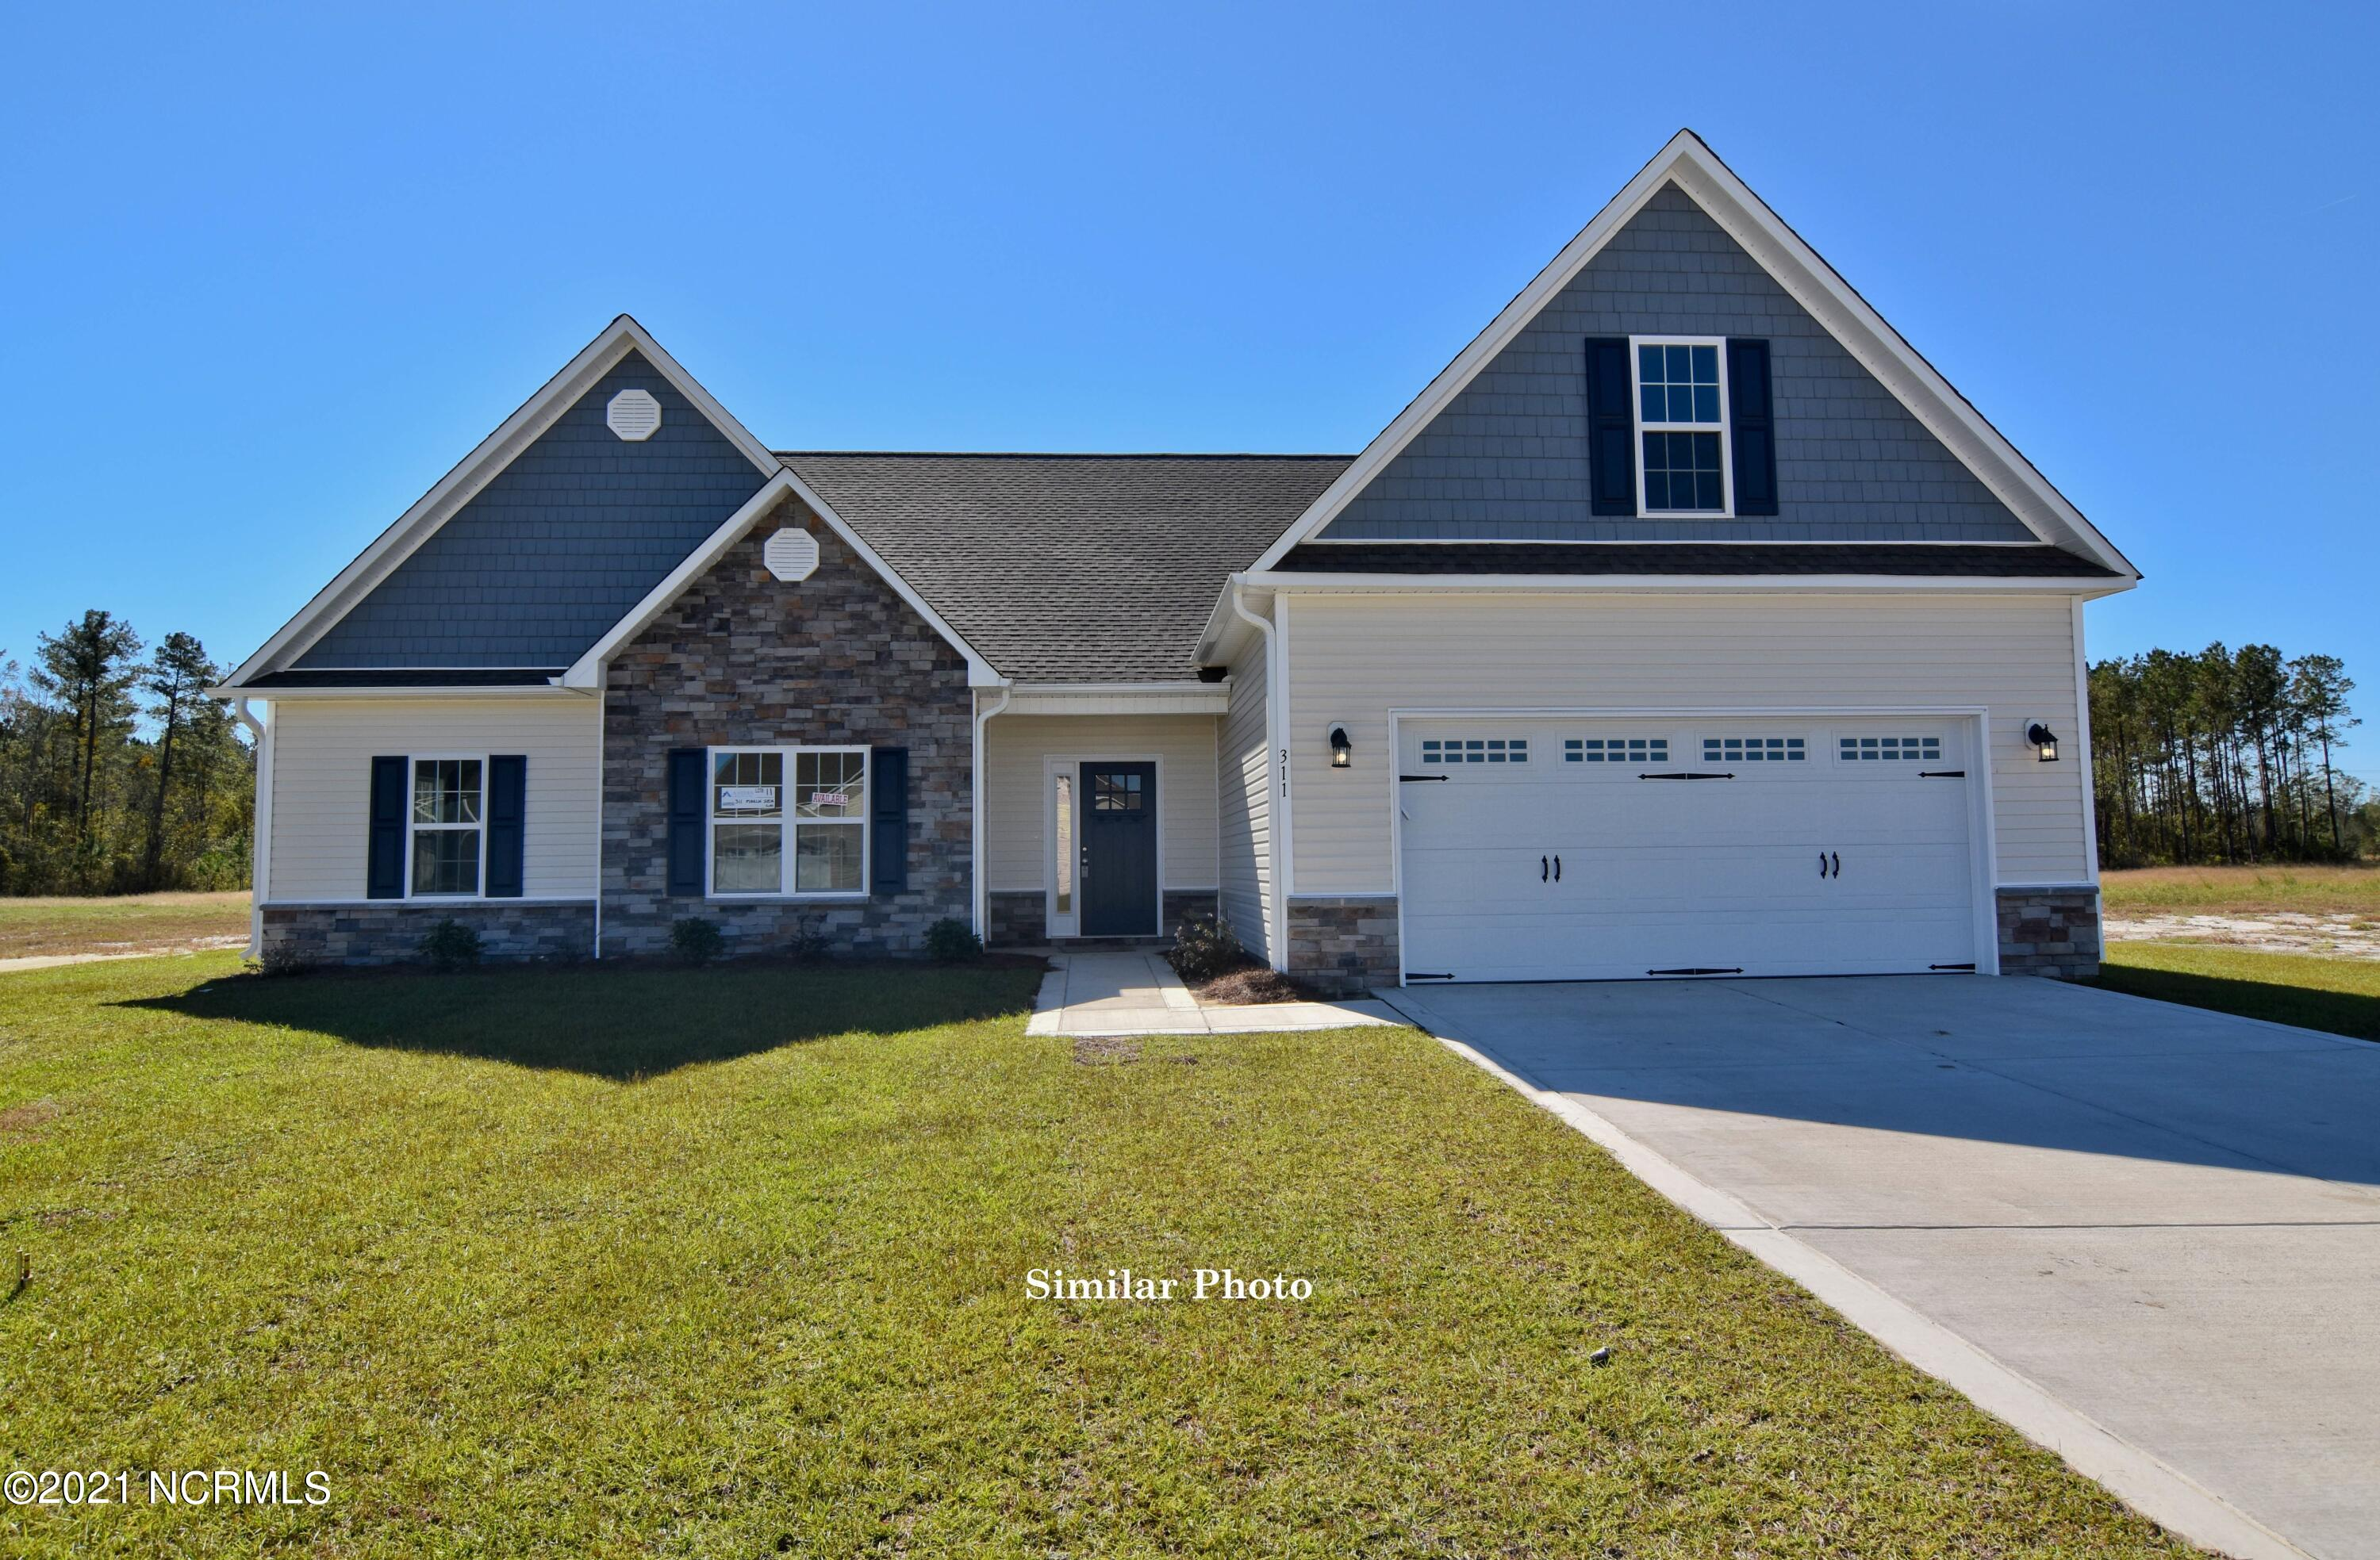 Welcome to the prestigious new home community, The Preserve at Tidewater. A coastal community. Brand new homes by Onslow County's most trusted and preferred builder, featured in Builder 100/ Top 200 Building firms in the country. This prominent neighborhood boasts a picturesque entrance, matured trees, spacious lots and a feeling of nature and serenity. Complete with an impressive clubhouse area and community pool.  Introducing the Sutton floor plan. Featuring 3 spacious bedrooms and 3 bathrooms at approximately 2,283 heated square feet.  The exterior is quite charming with easy-to-maintain vinyl siding accented by stone or brick. All surrounded by a sodded front yard with a clean, classic landscape. The foyer welcomes you in to a lovely, open living space. At approximately 16'x18'', the living room is perfect for gathering the entire family for movie or game night. Complete with a double trey ceiling, ceiling fan, and fireplace situated in the corner, surrounded by marble and topped with a custom mantle. The chef in the family is sure to fall in love with the kitchen! Flat panel, staggered cabinets topped with modern counters. Stainless appliances include a smooth-top range, microwave hood, and dishwasher. The spacious dining area is open to the kitchen. The master bedroom is approximately 15'x14' and features a ceiling fan, trey ceiling, and walk-in-closet. Unwind after a long day in the luxurious master bathroom. Double vanity topped with cultured marble counters, full view custom mirror, ceramic tile flooring, separate shower and soaking tub. Bedrooms 2 and 3 are approximately 11'x13' and 12'x12' with double closets and prewired for ceiling fans. Enjoy those Carolina evenings on the covered patio. 2 car garage. All backed by a one-year builder warranty from a top, local builder. Call today! NOTE: Floor plan renderings are similar and solely representational. Measurements, elevations, and design features, among other things may vary in the final construction. Cal